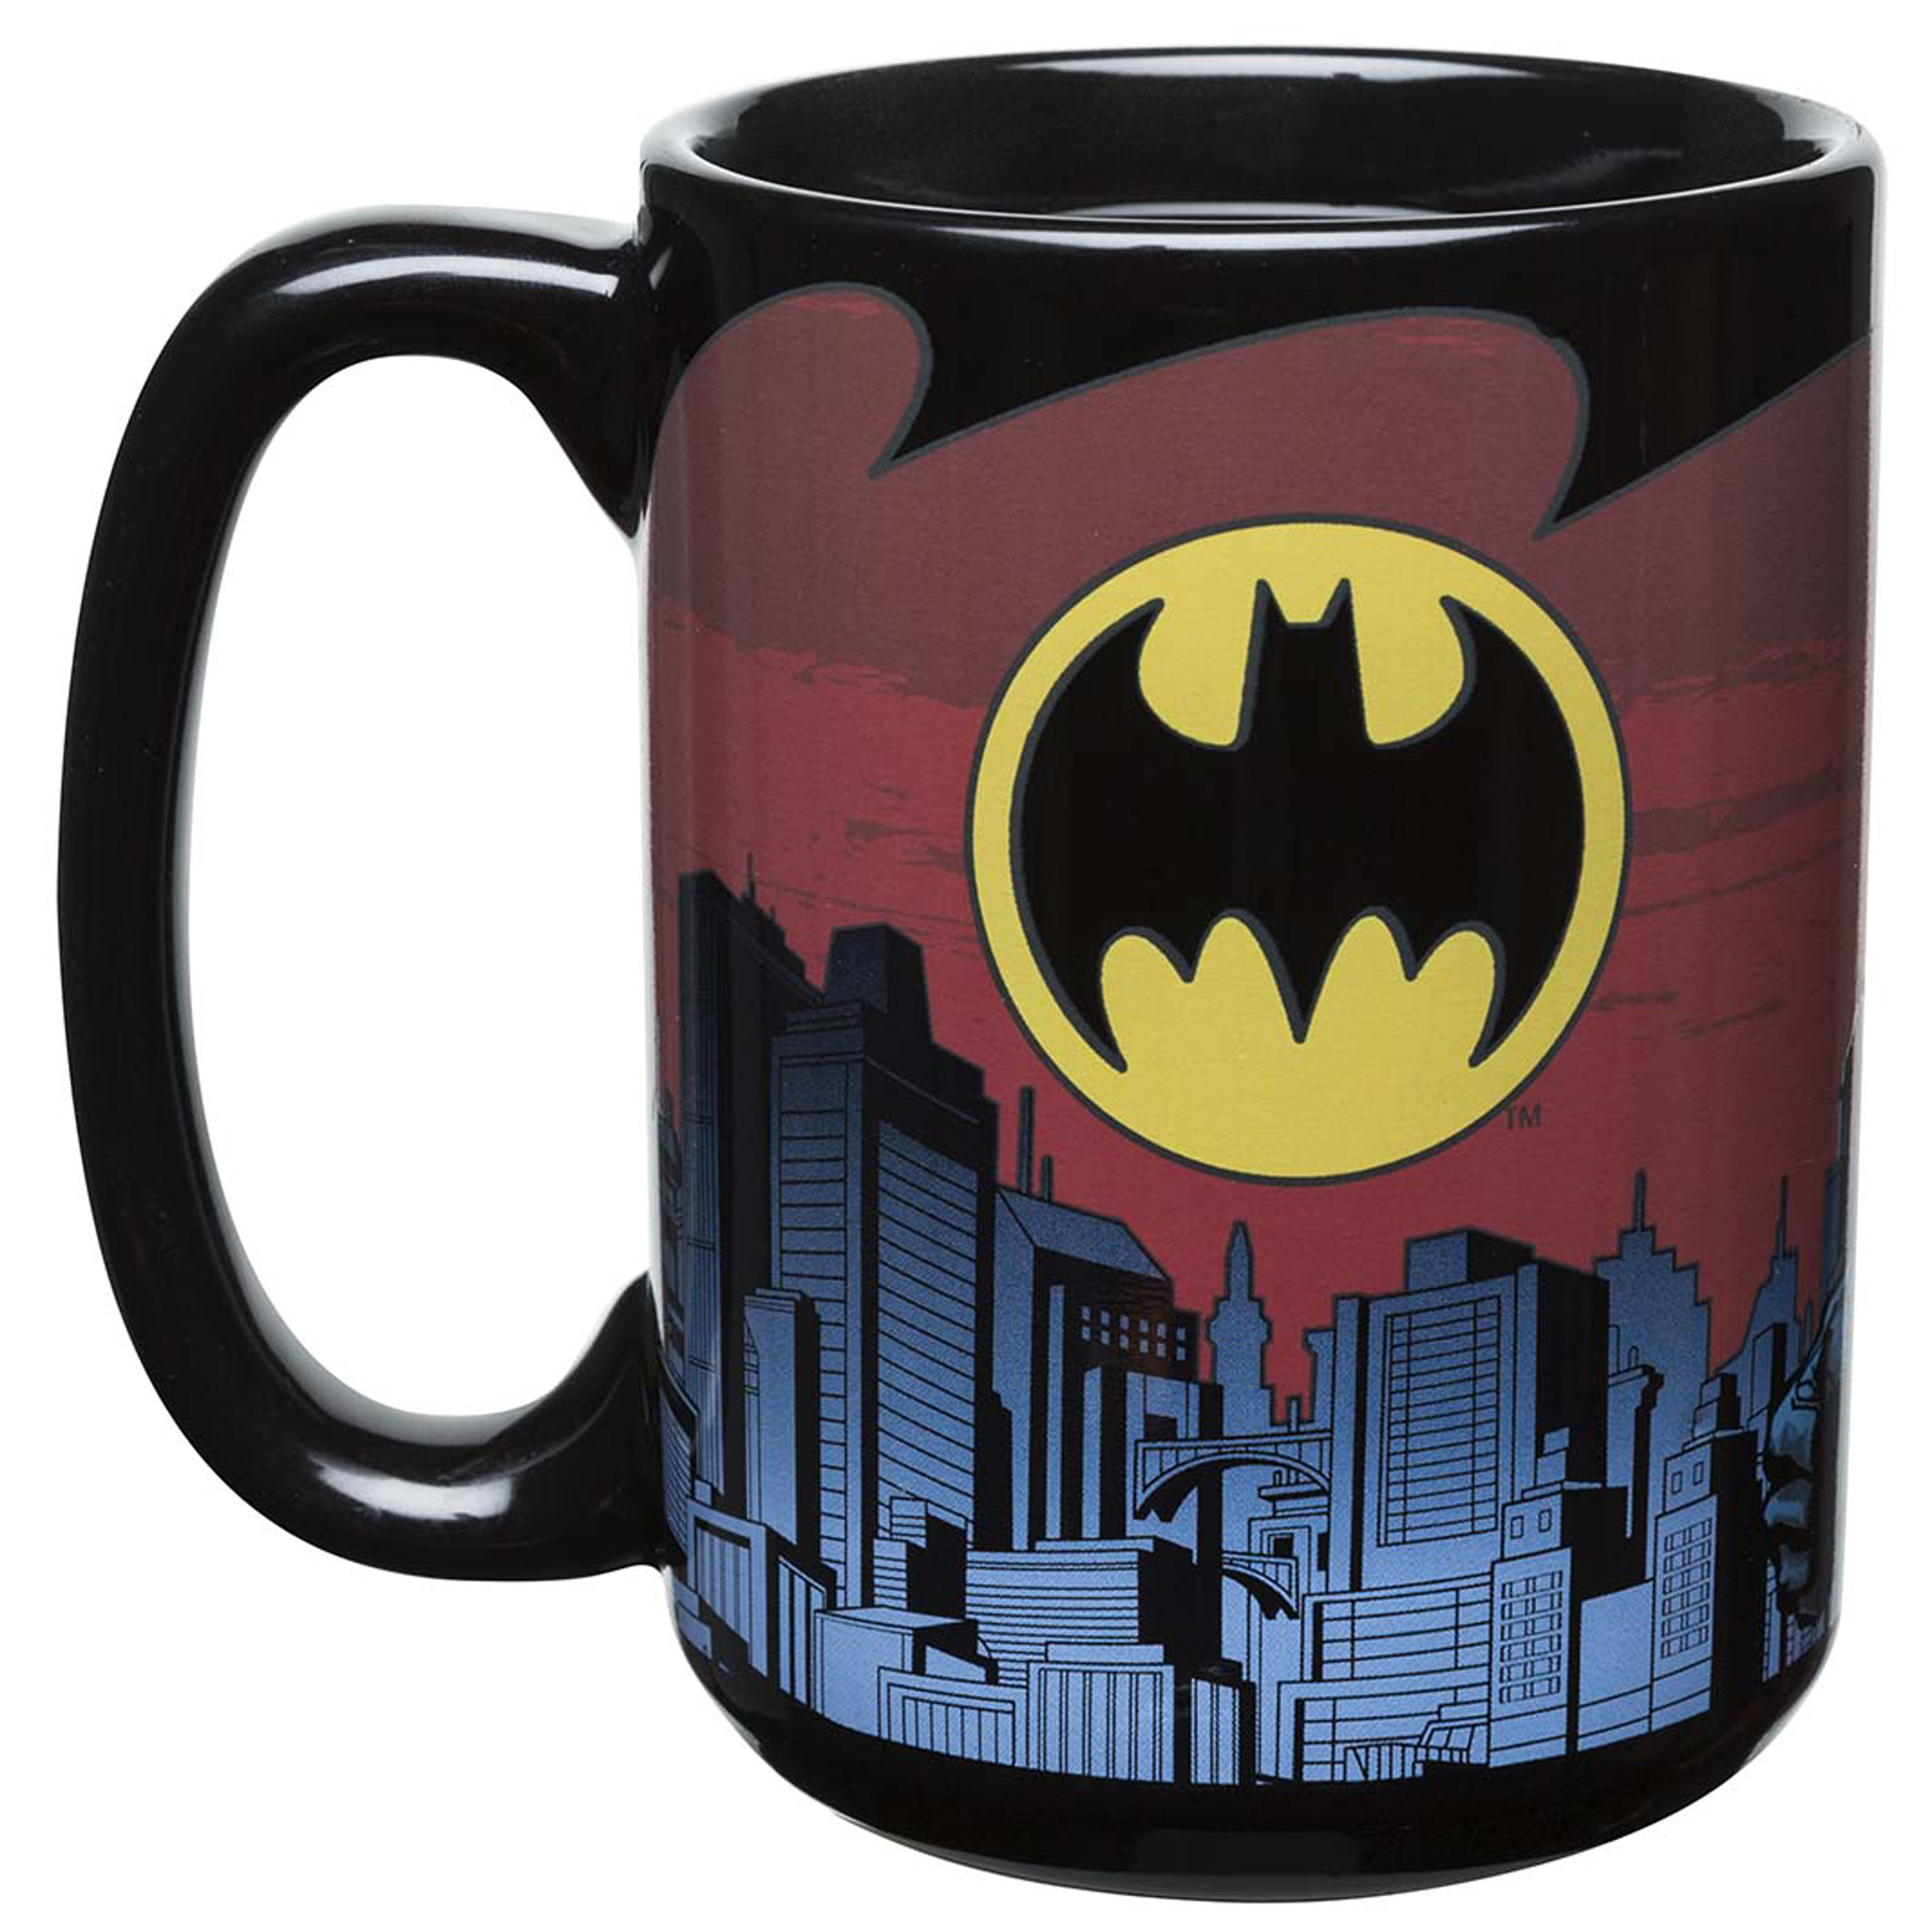 DC Comics 15 oz. Coffee Mug, Batman slideshow image 5